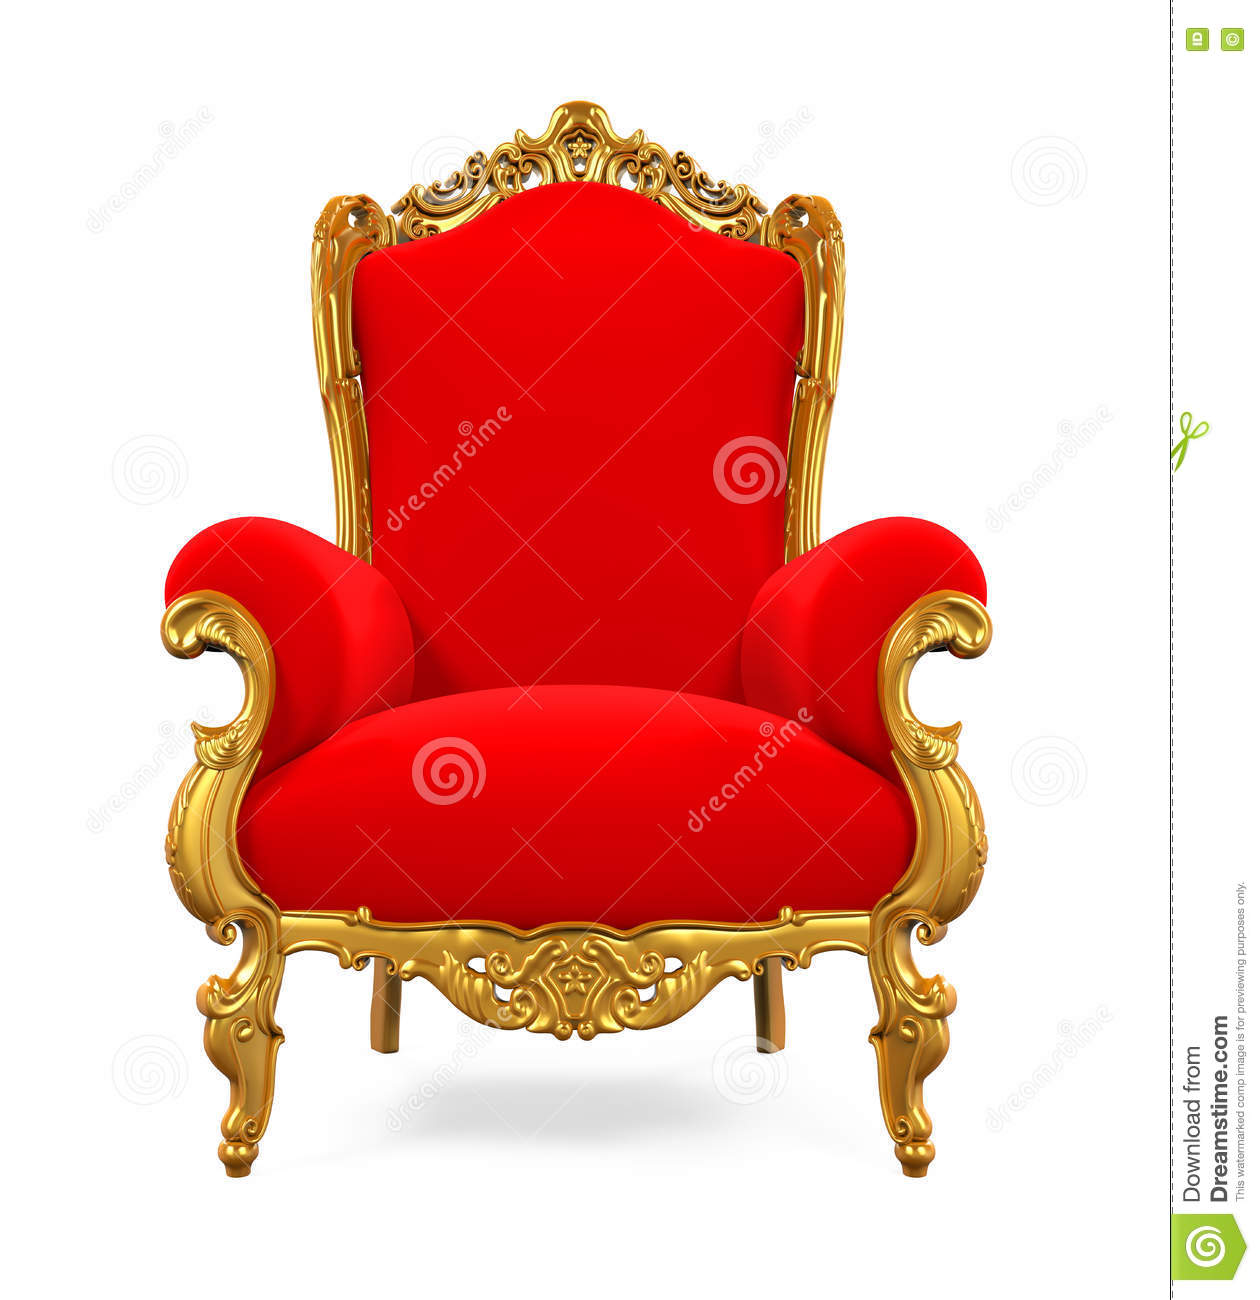 king throne chair stock illustration - image: 75617274